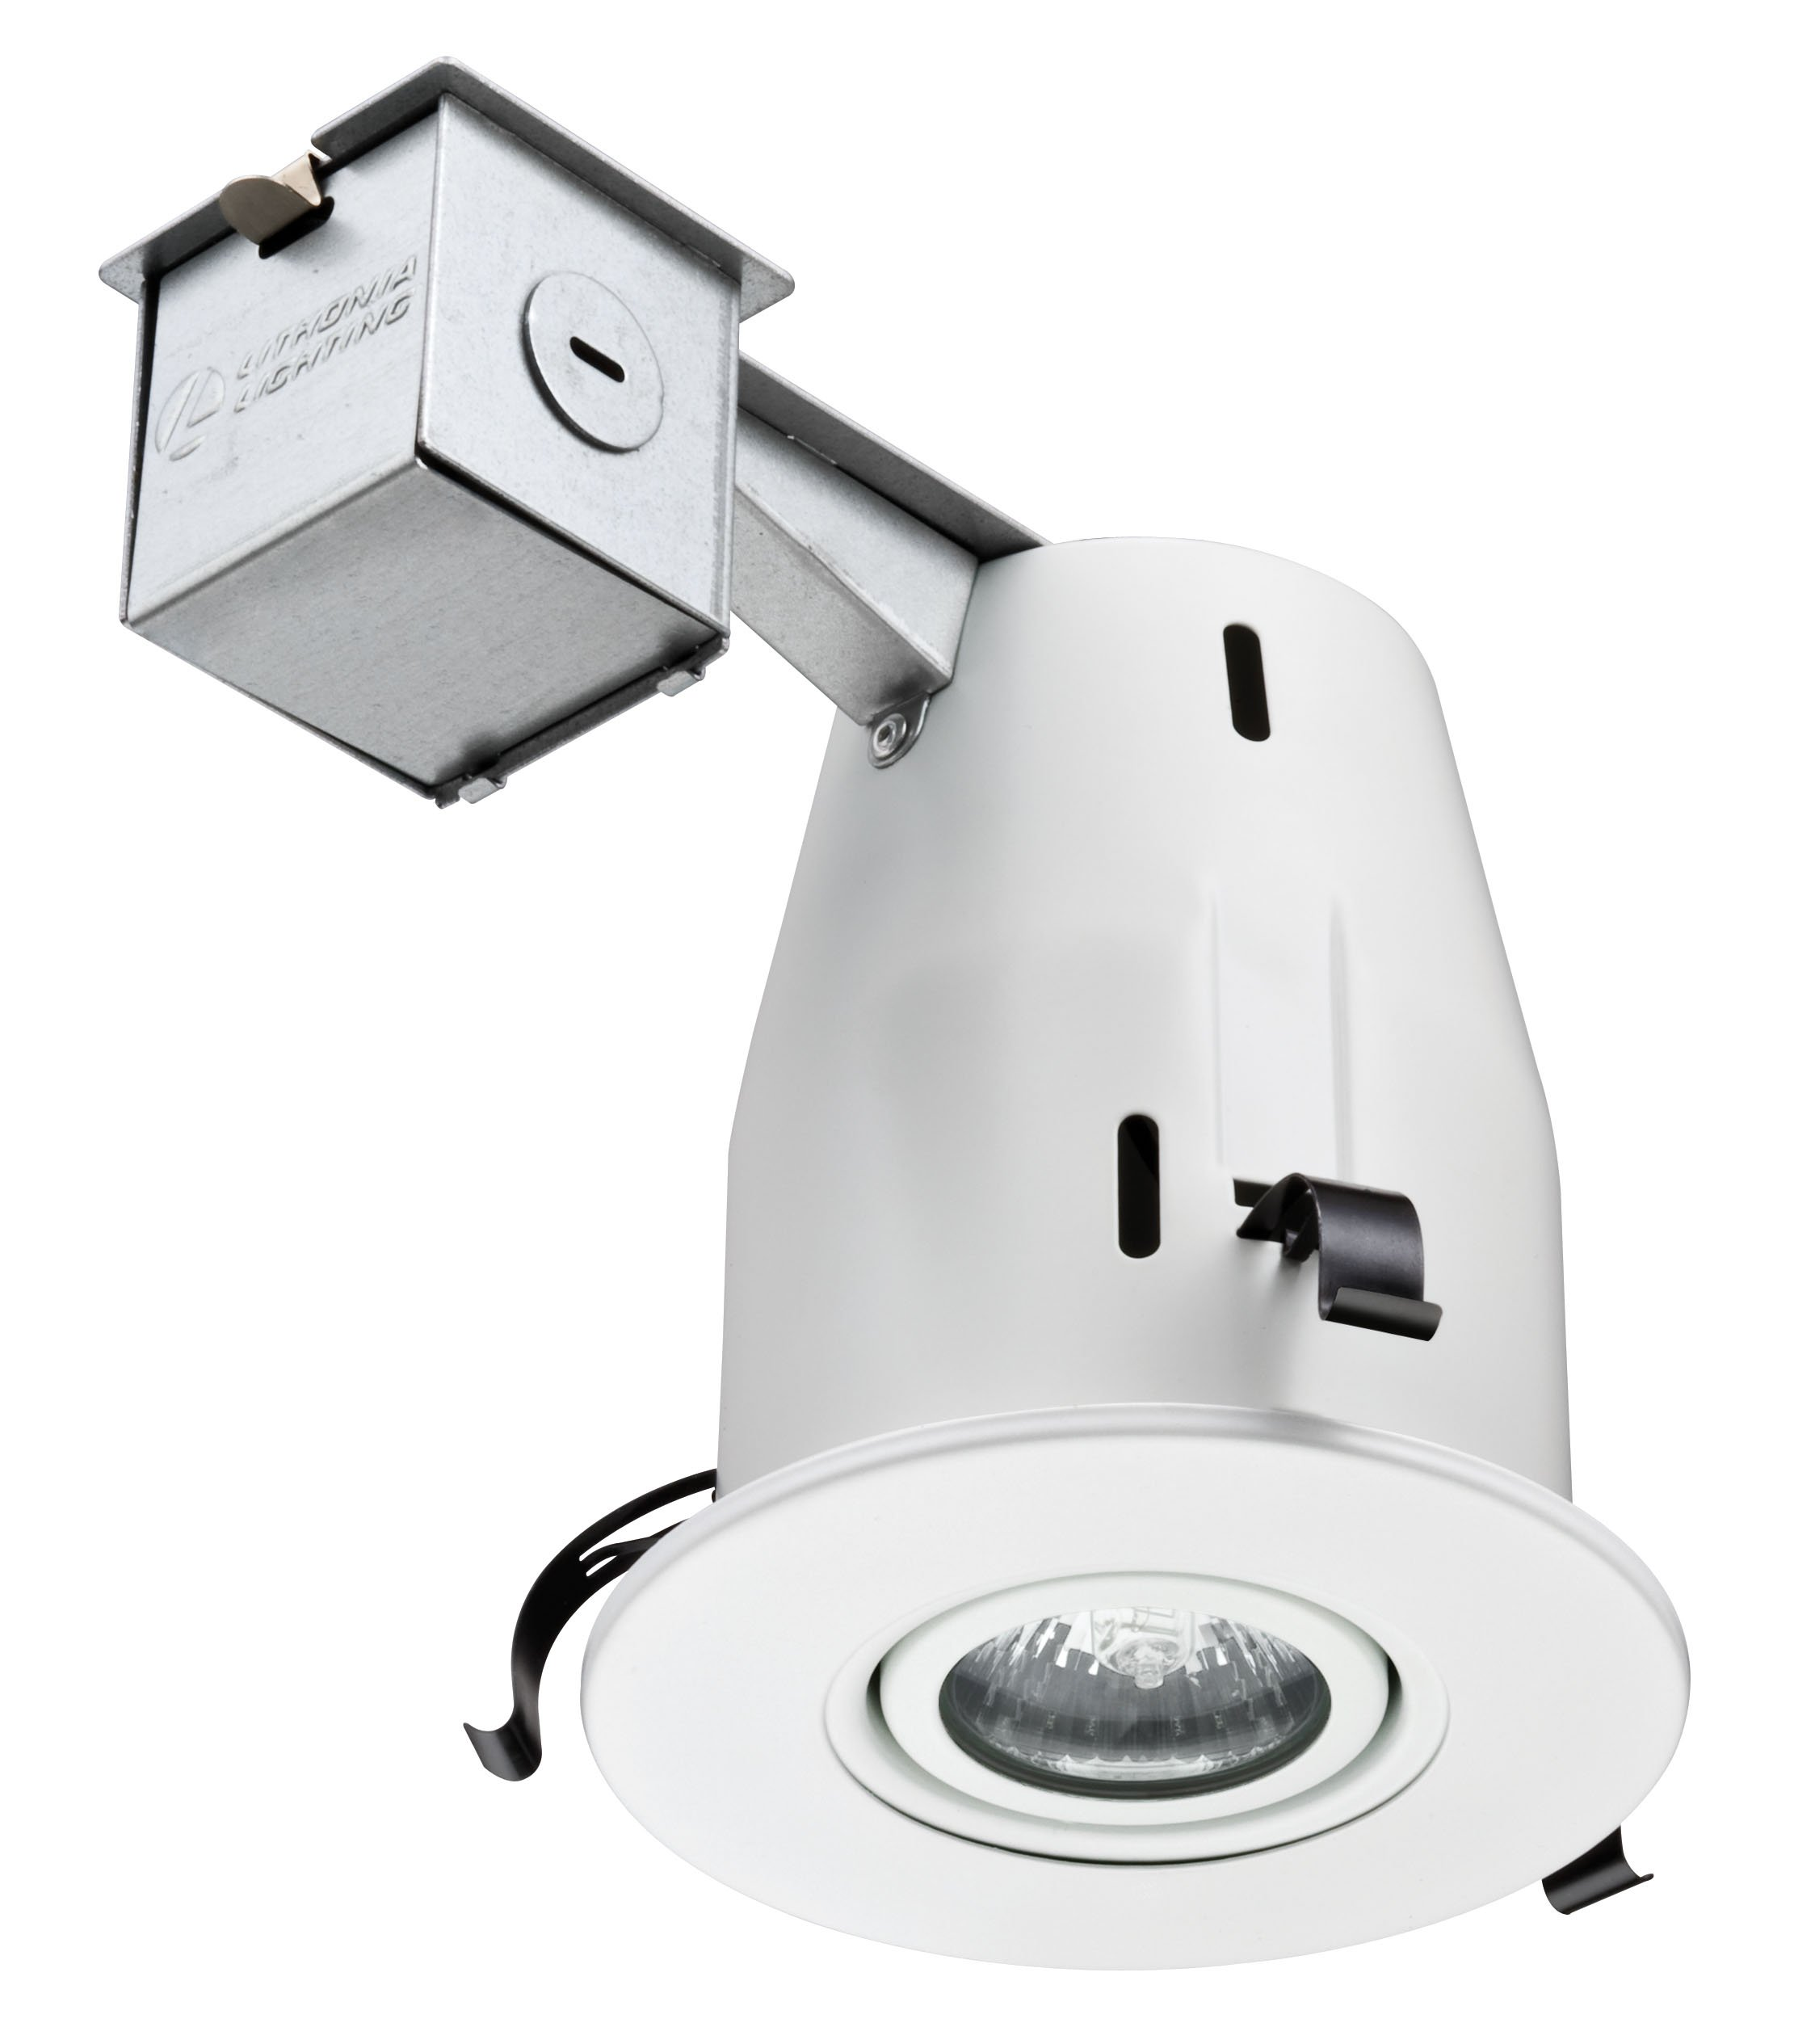 Lithonia Lighting LK4GMW M6 4 Inch Gimbal Kit with Halogen Lamp Included in White